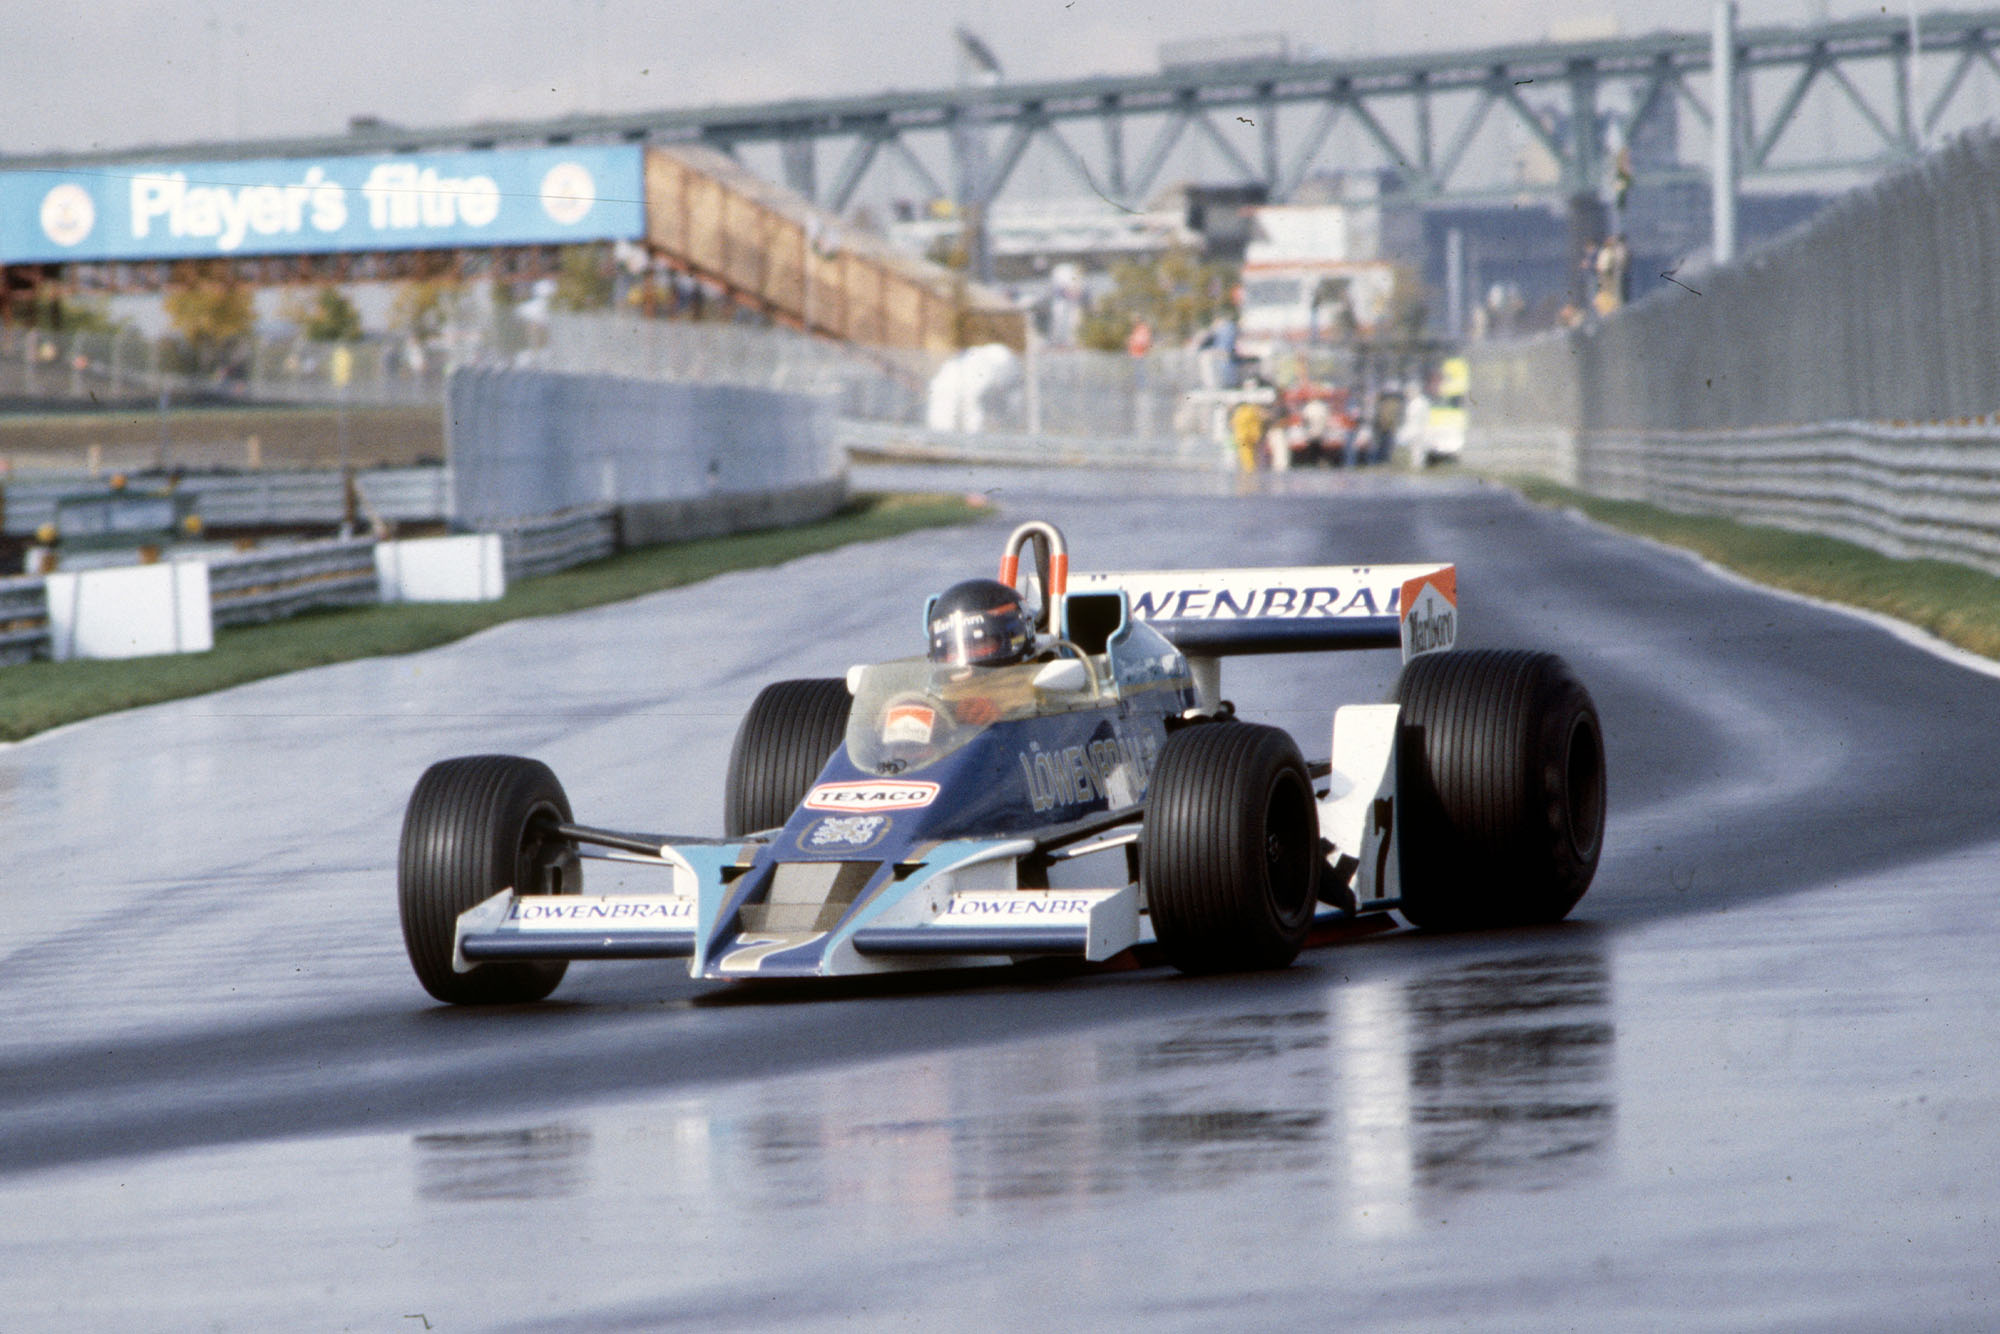 James Hunt (McLaren) running a one-off blue livery at the 1978 Canadian Grand Prix, Montreal.